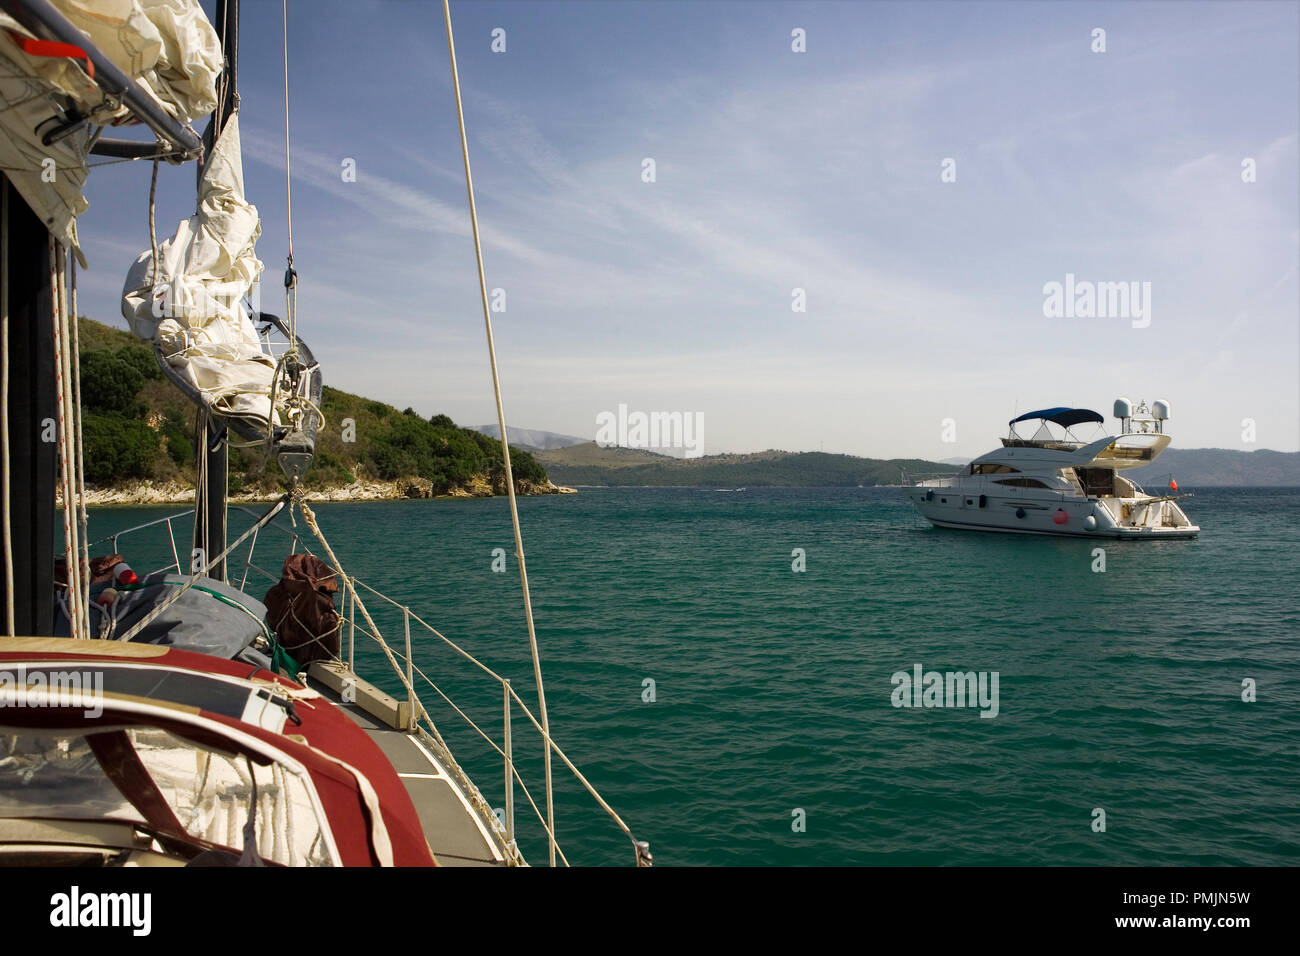 At anchor in the bay of Agios Stefanos, Corfu, Greece - Stock Image